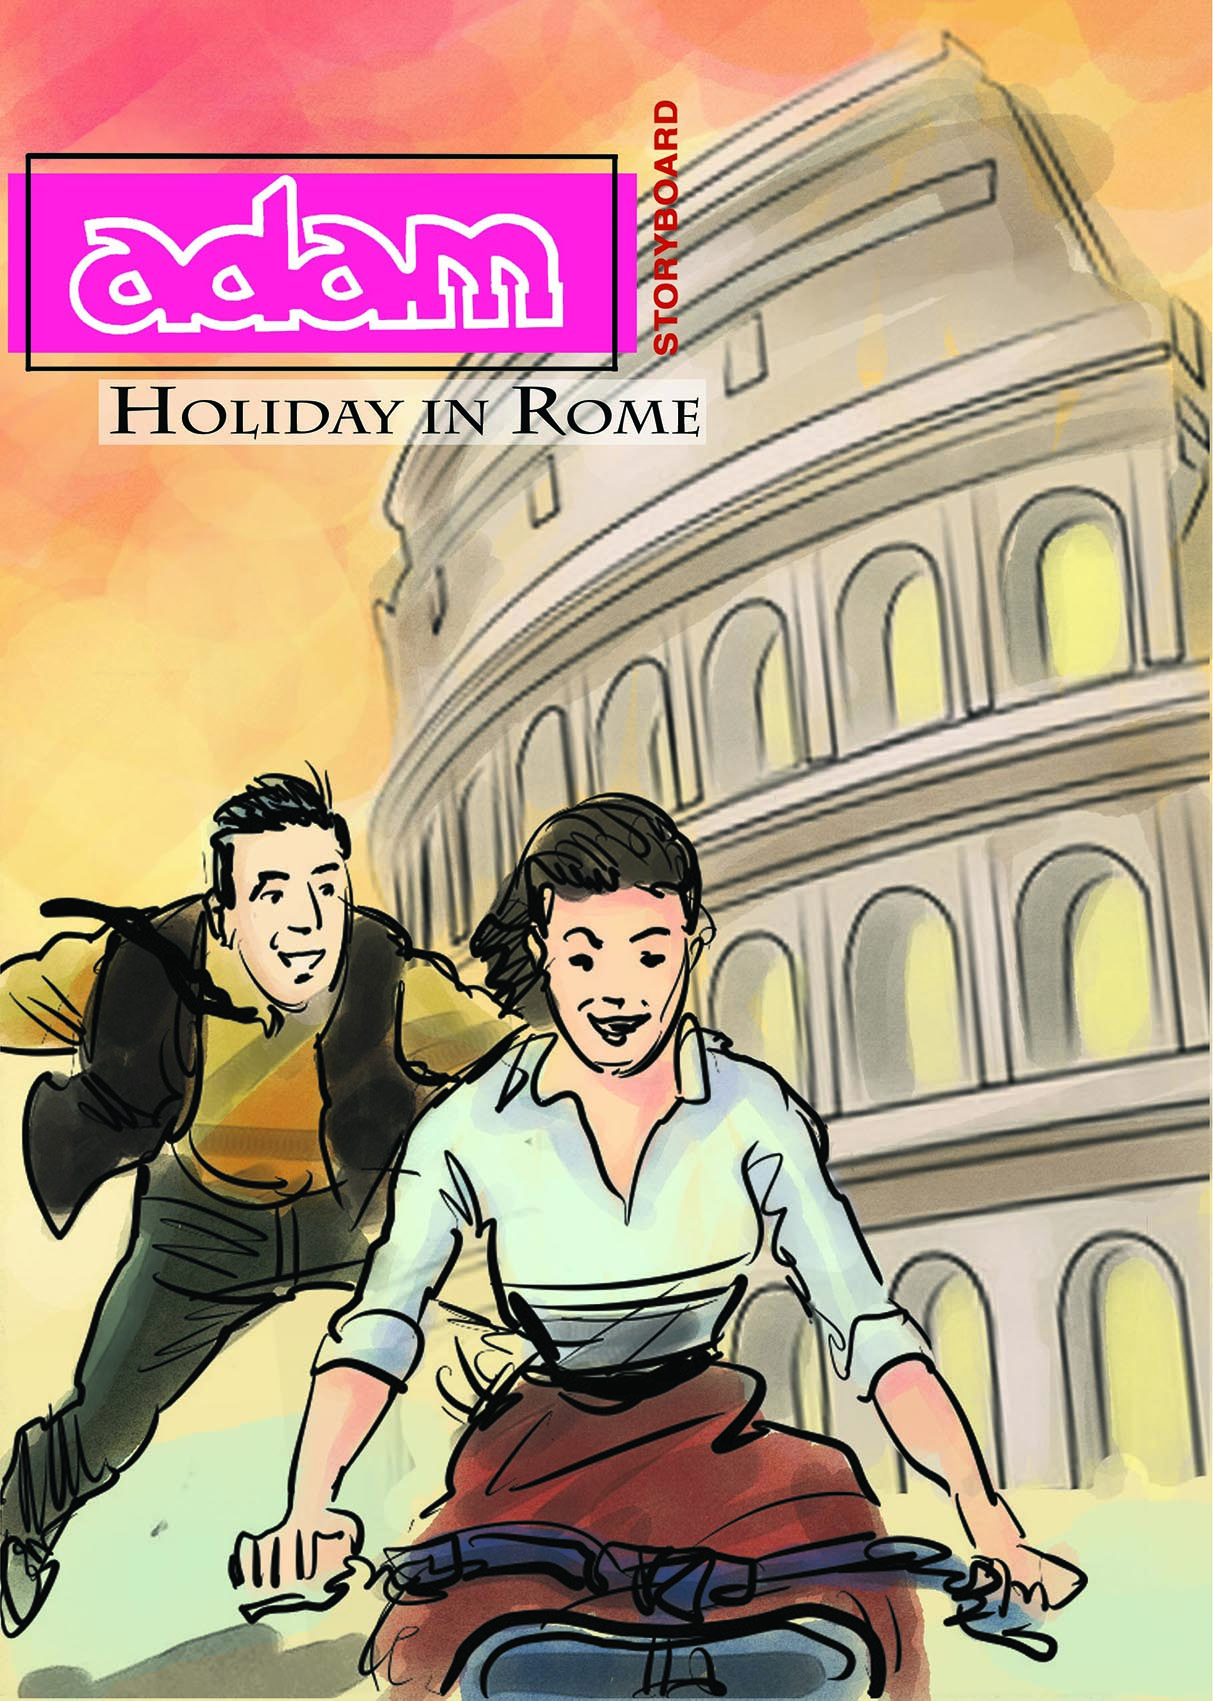 Adam: Holiday in Rome